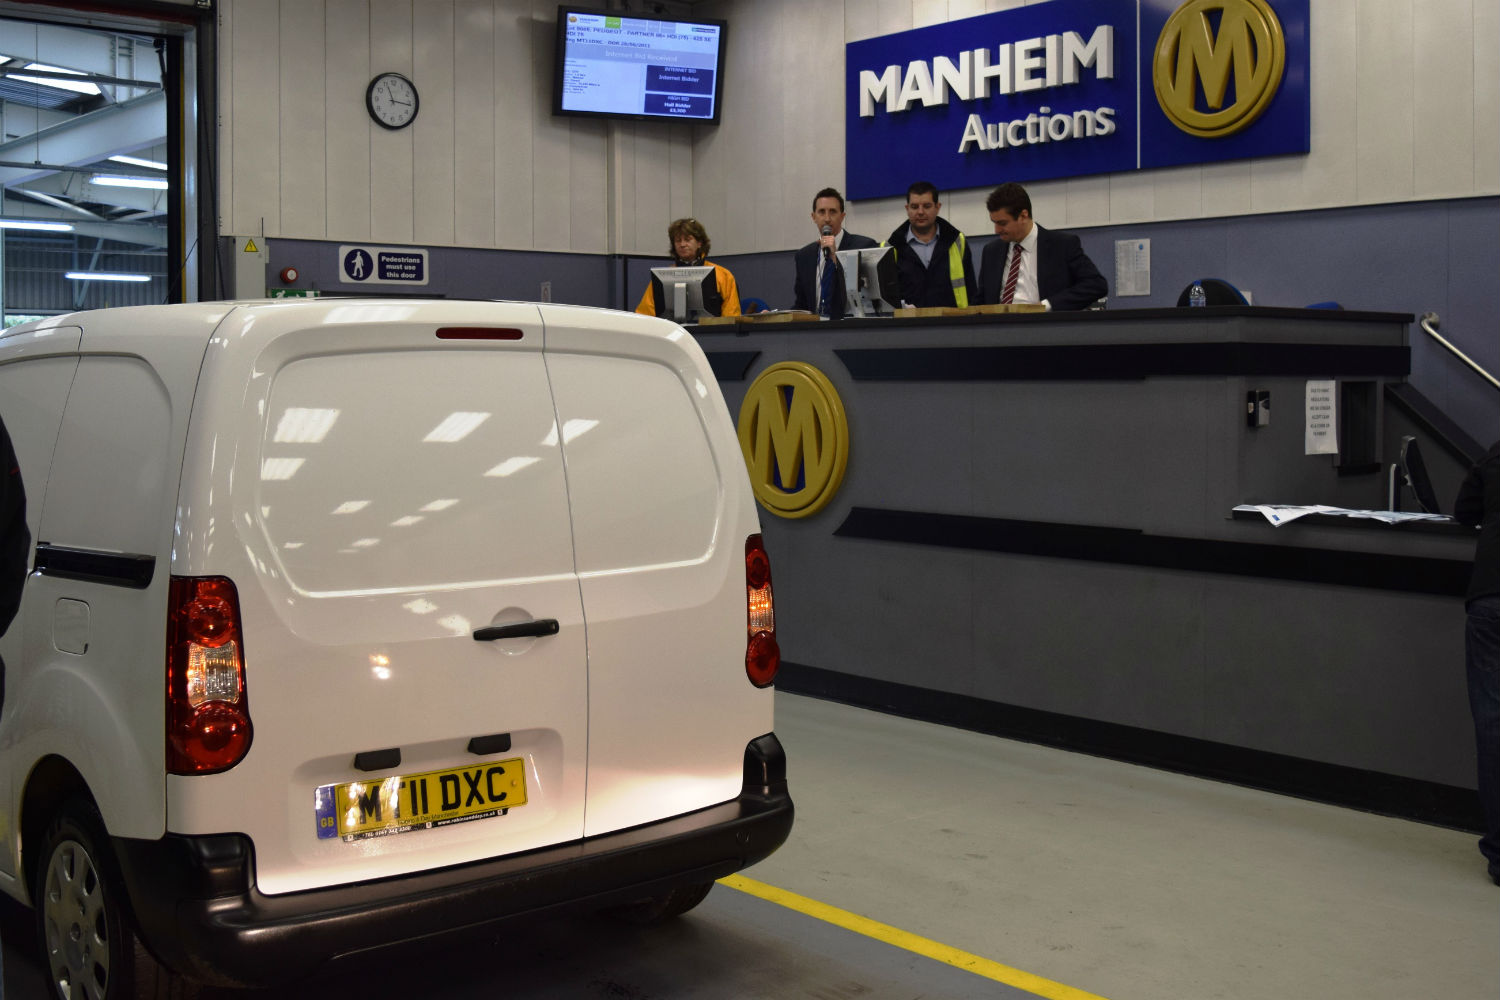 Van at a commercial vehicle auction